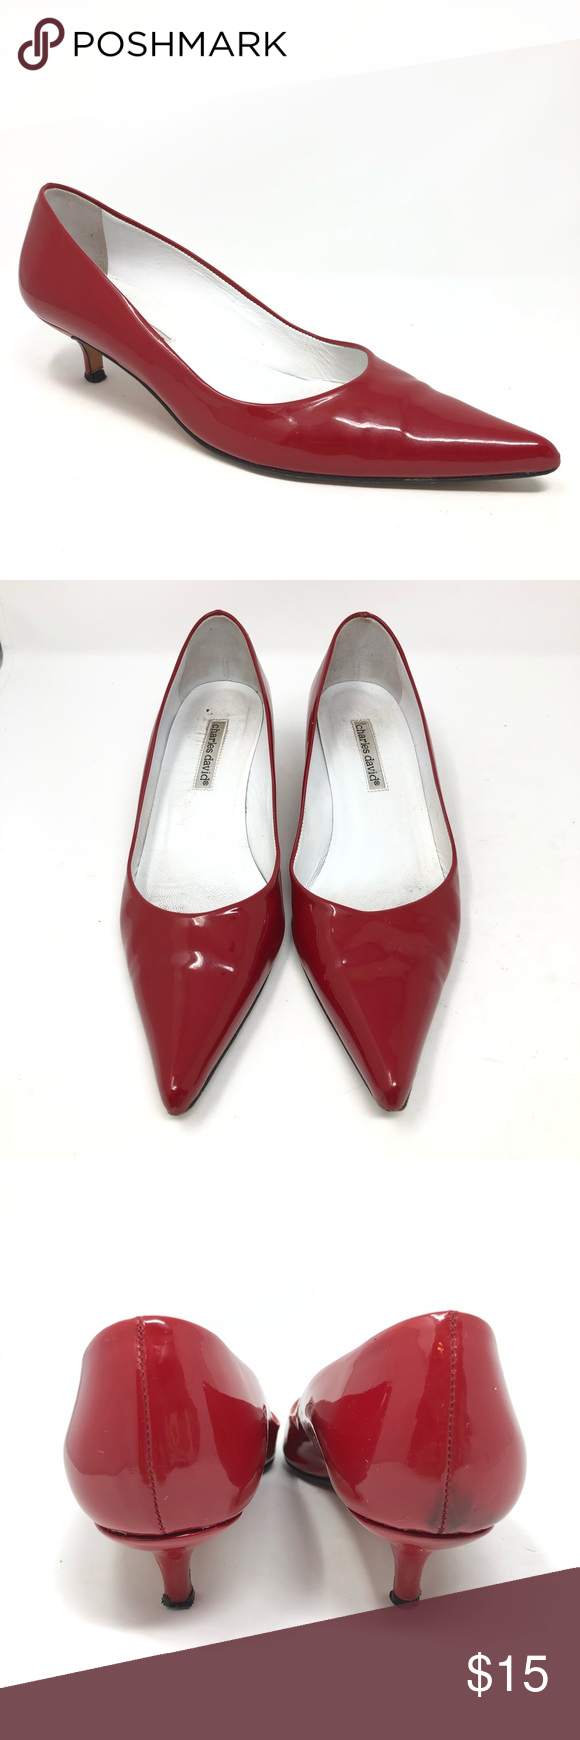 Charles David Red Kitten Heels Patent Leather 8 5 Fair Condition Small Kitten Heels Discoloration On Back Color Is A Bri Red Kitten Heels Kitten Heels Heels